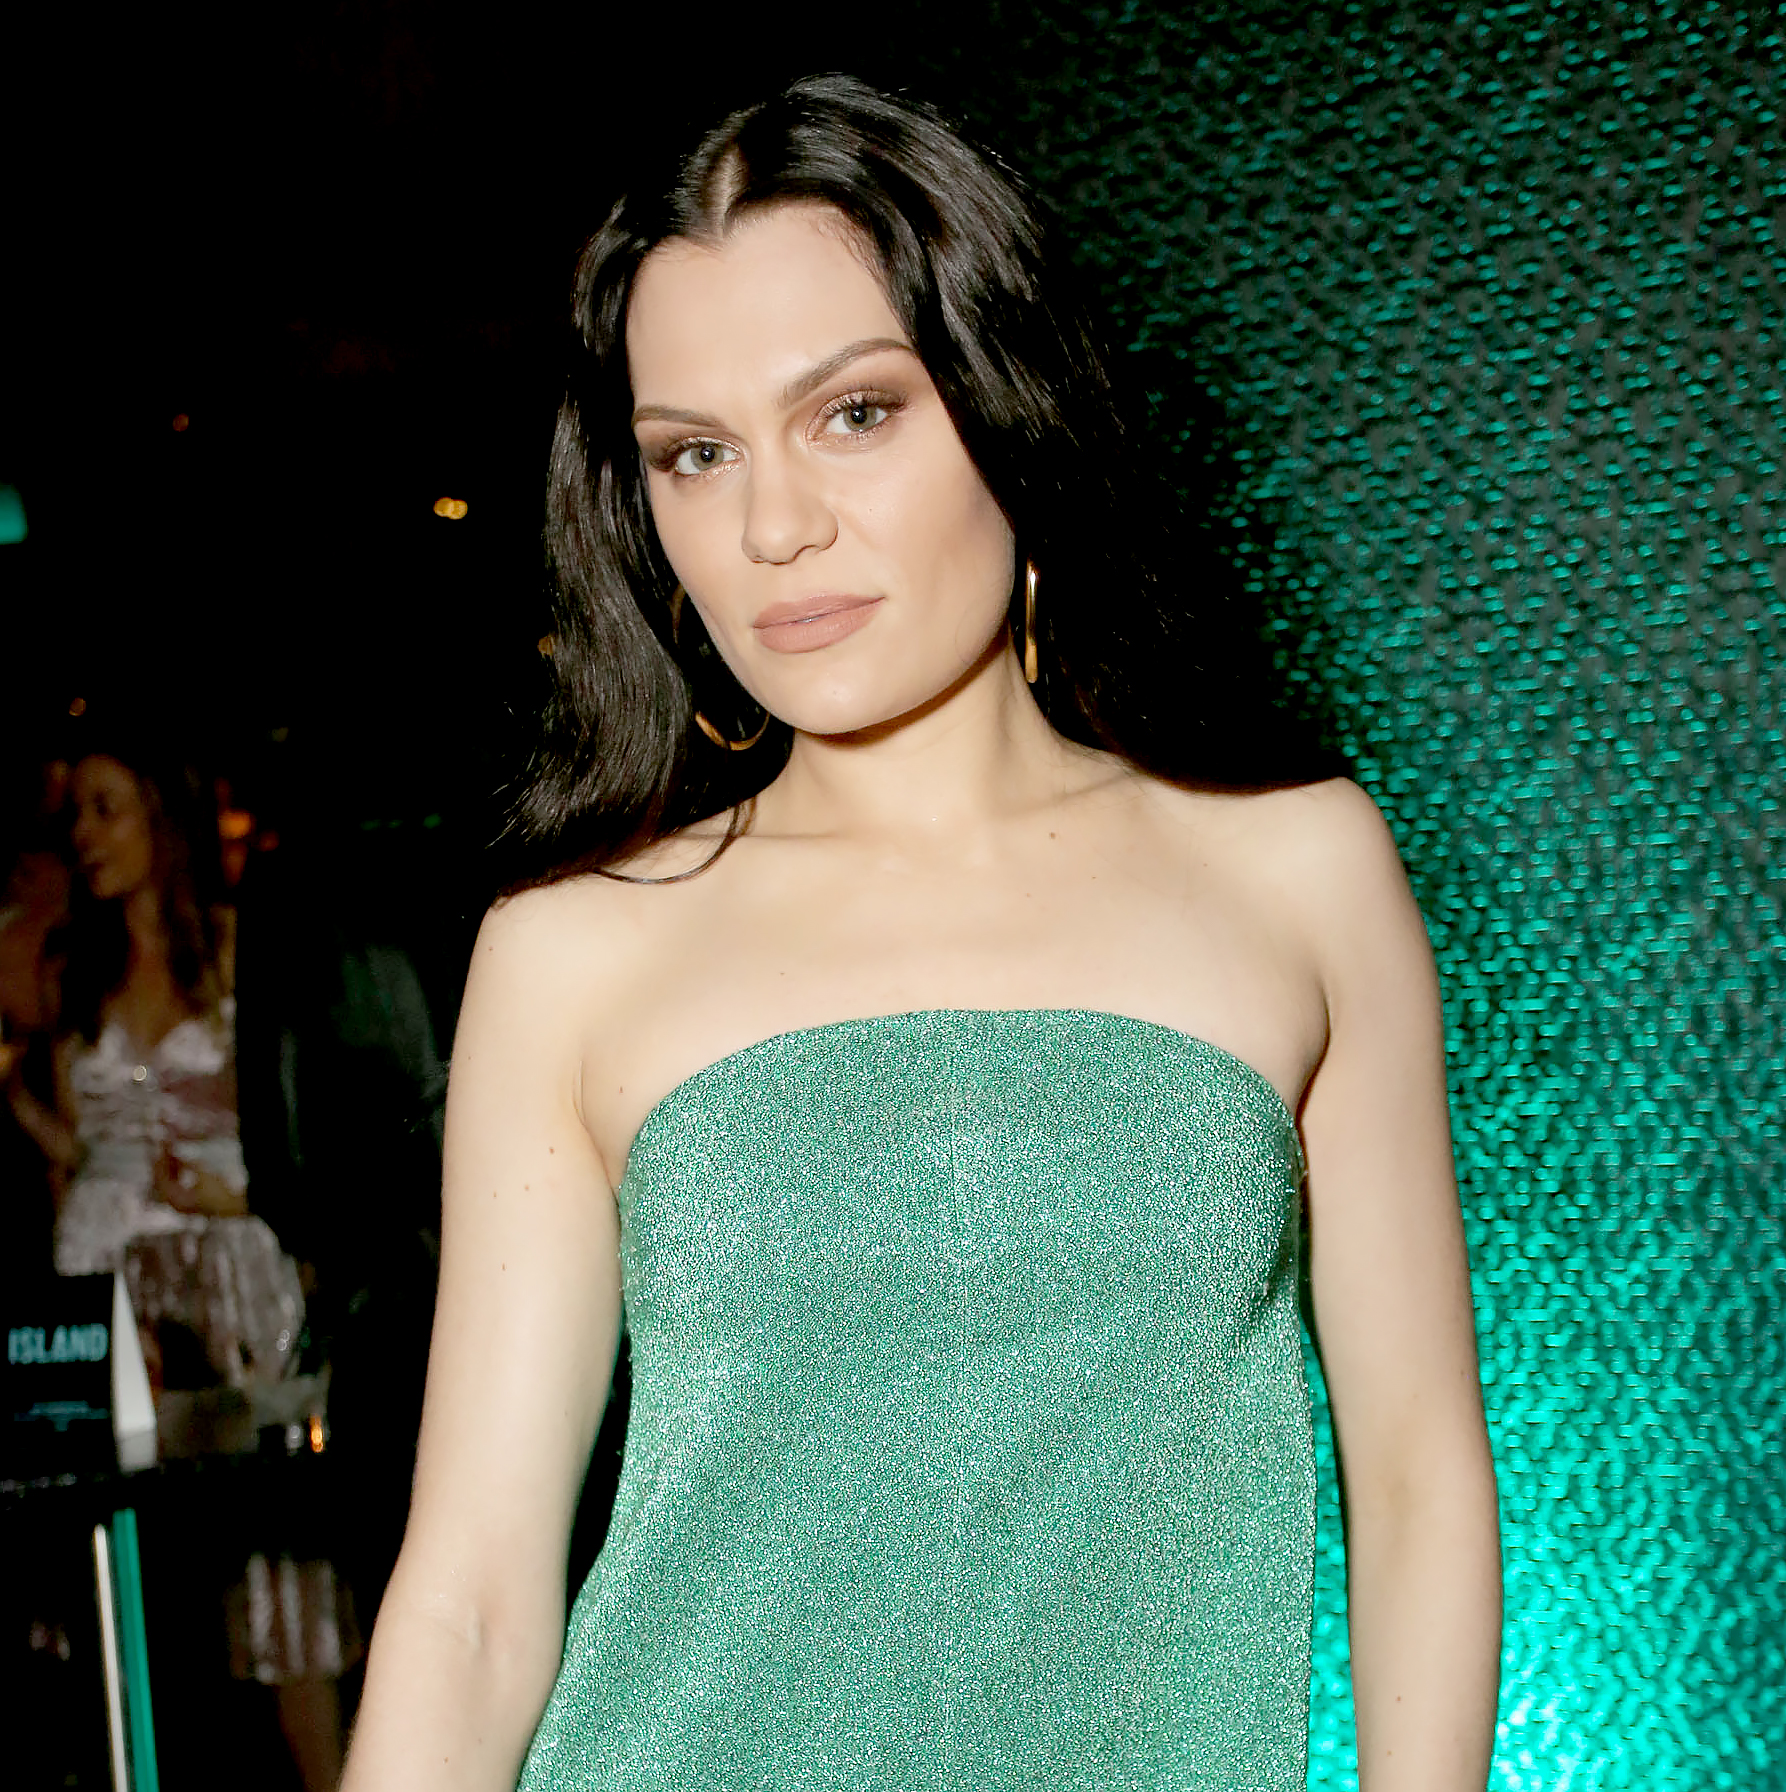 """jessie-j-social-media - The """" Bang Bang"""" singer gave fans a piece of her mind over growing comparisons between her and boyfriend Channing Tatum 's estranged wife Jenna Dewan 's looks in November 2018. """"There is a story I have seen be written over and over again in the past few weeks that talks about myself being directly compared to another beautiful woman regarding our looks and people picking who they think is prettier,"""" she wrote on Instagram ."""